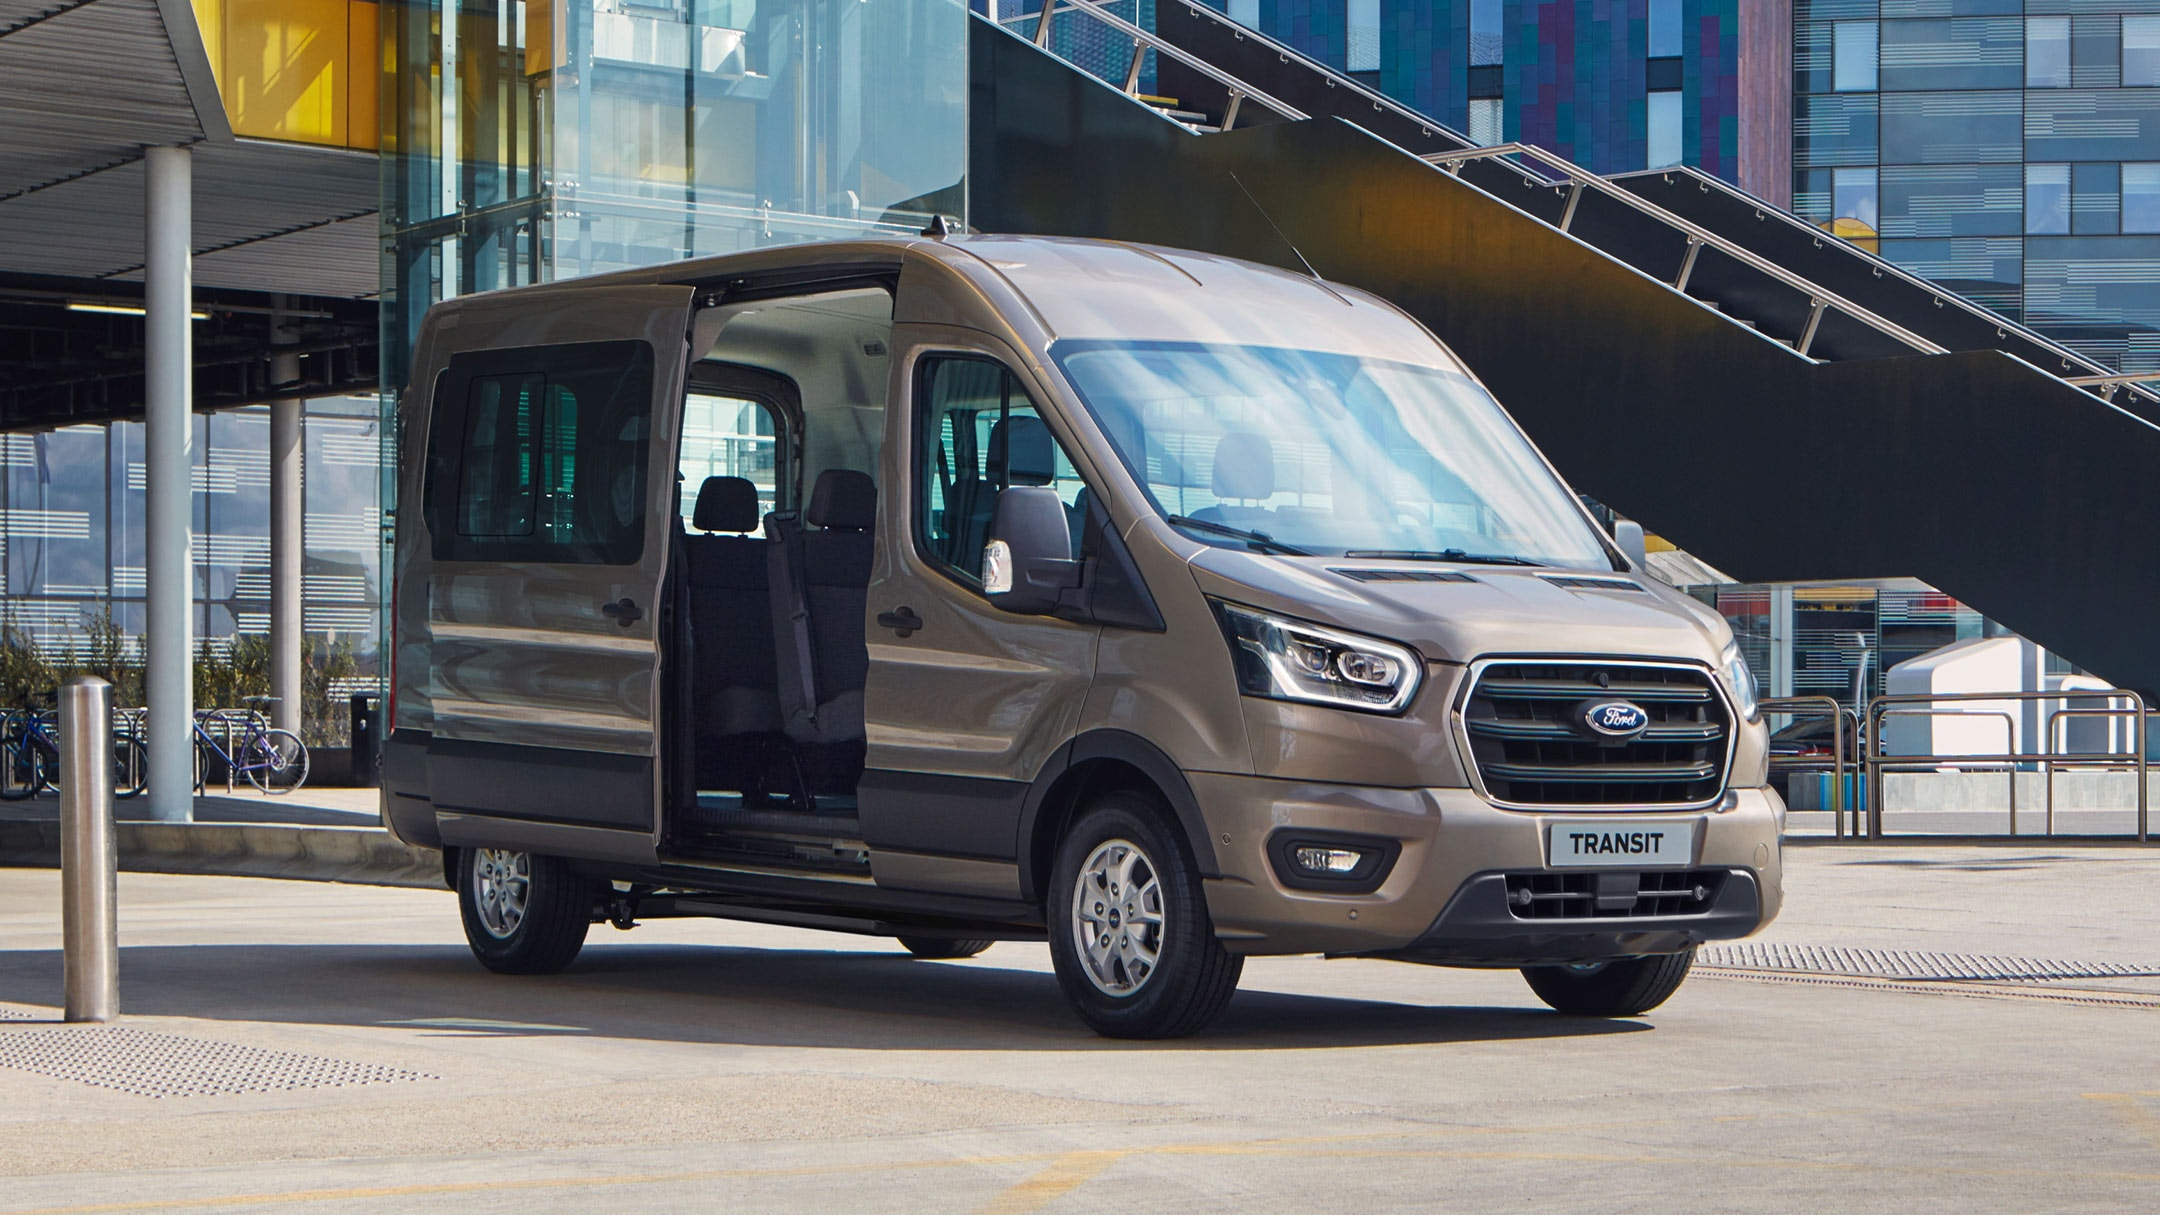 Ford Transit Minibus standing in front of building